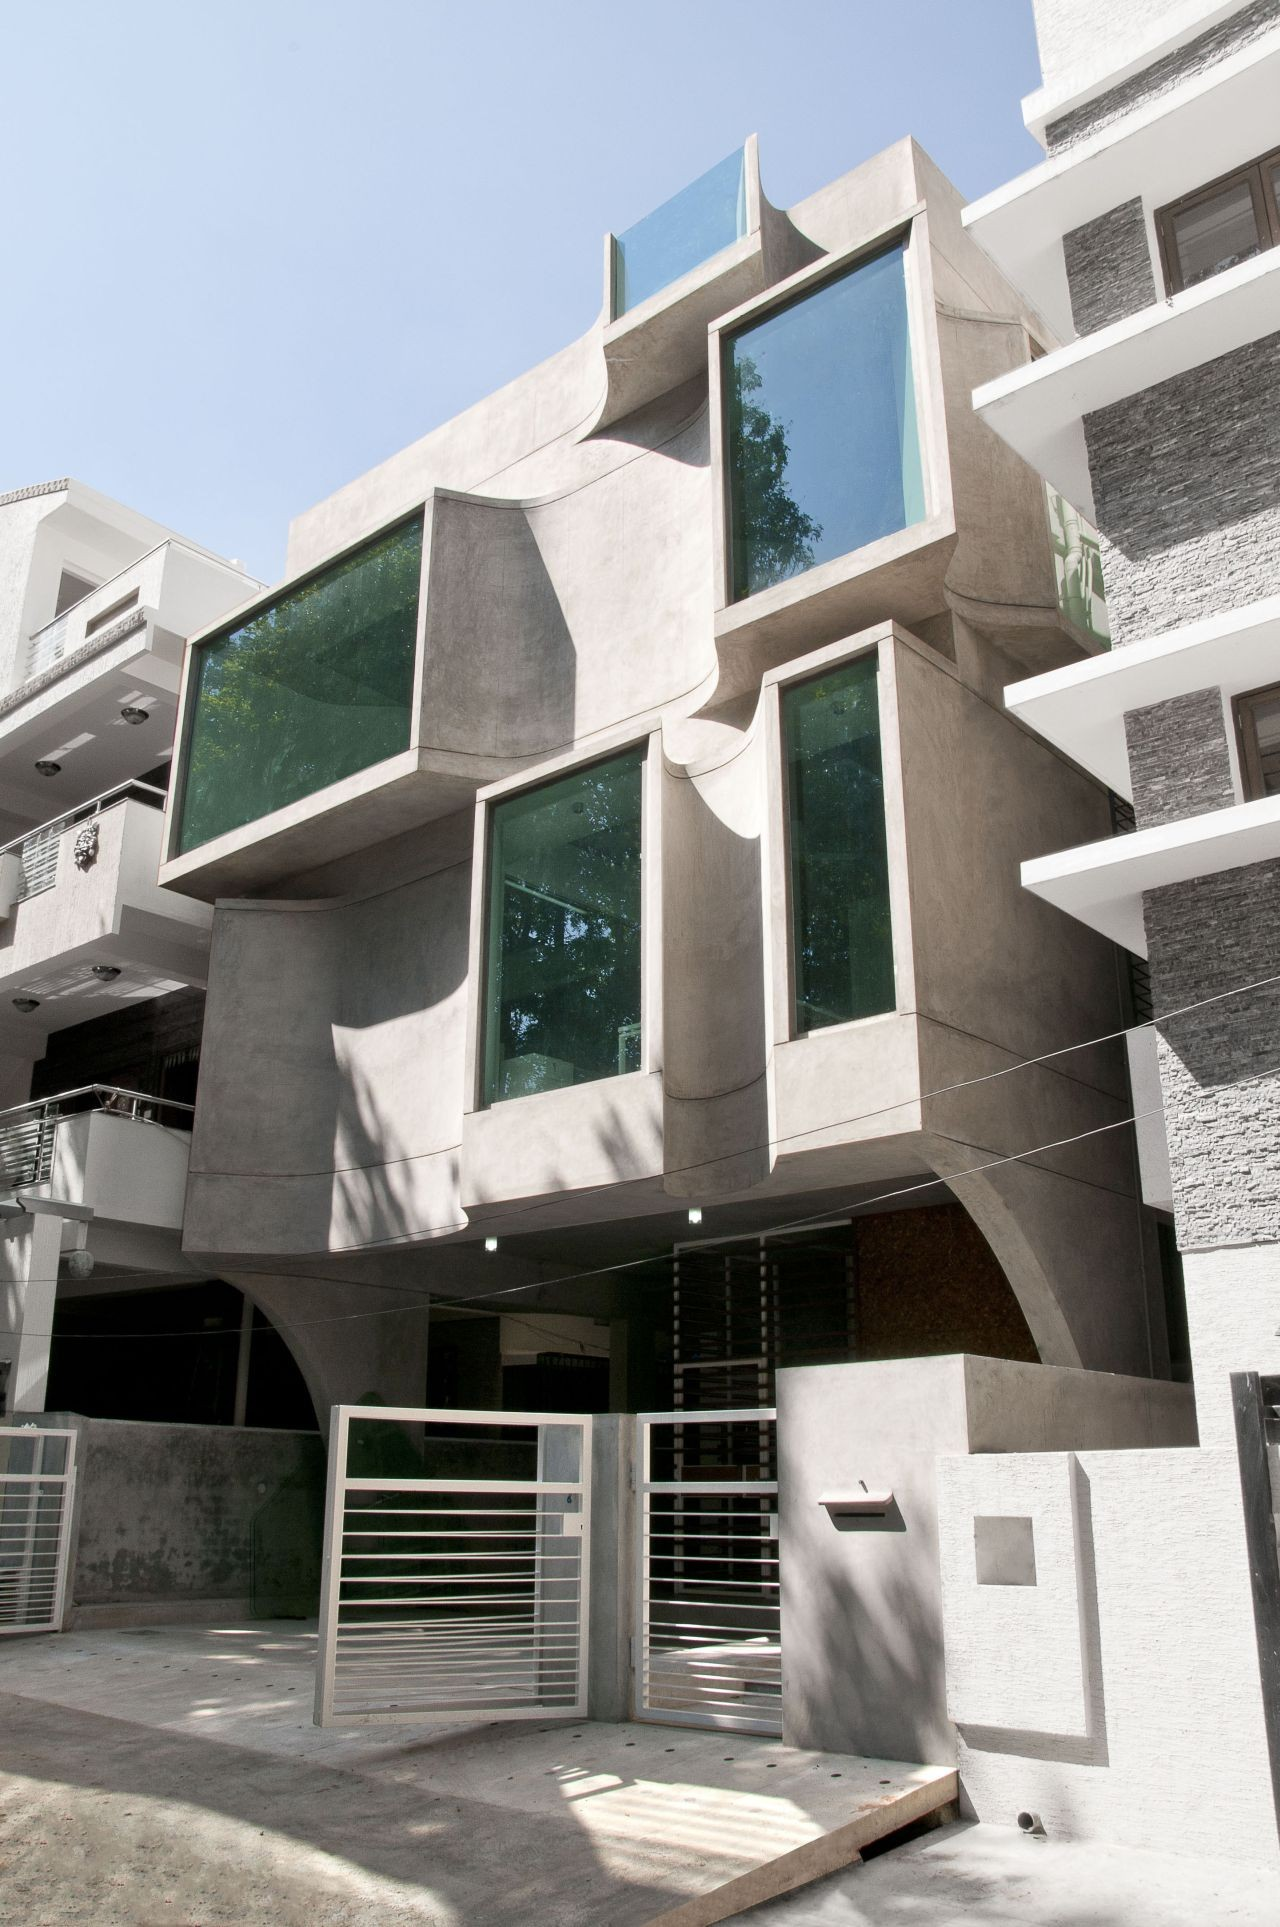 Facade Architecture Residential Modern Houses